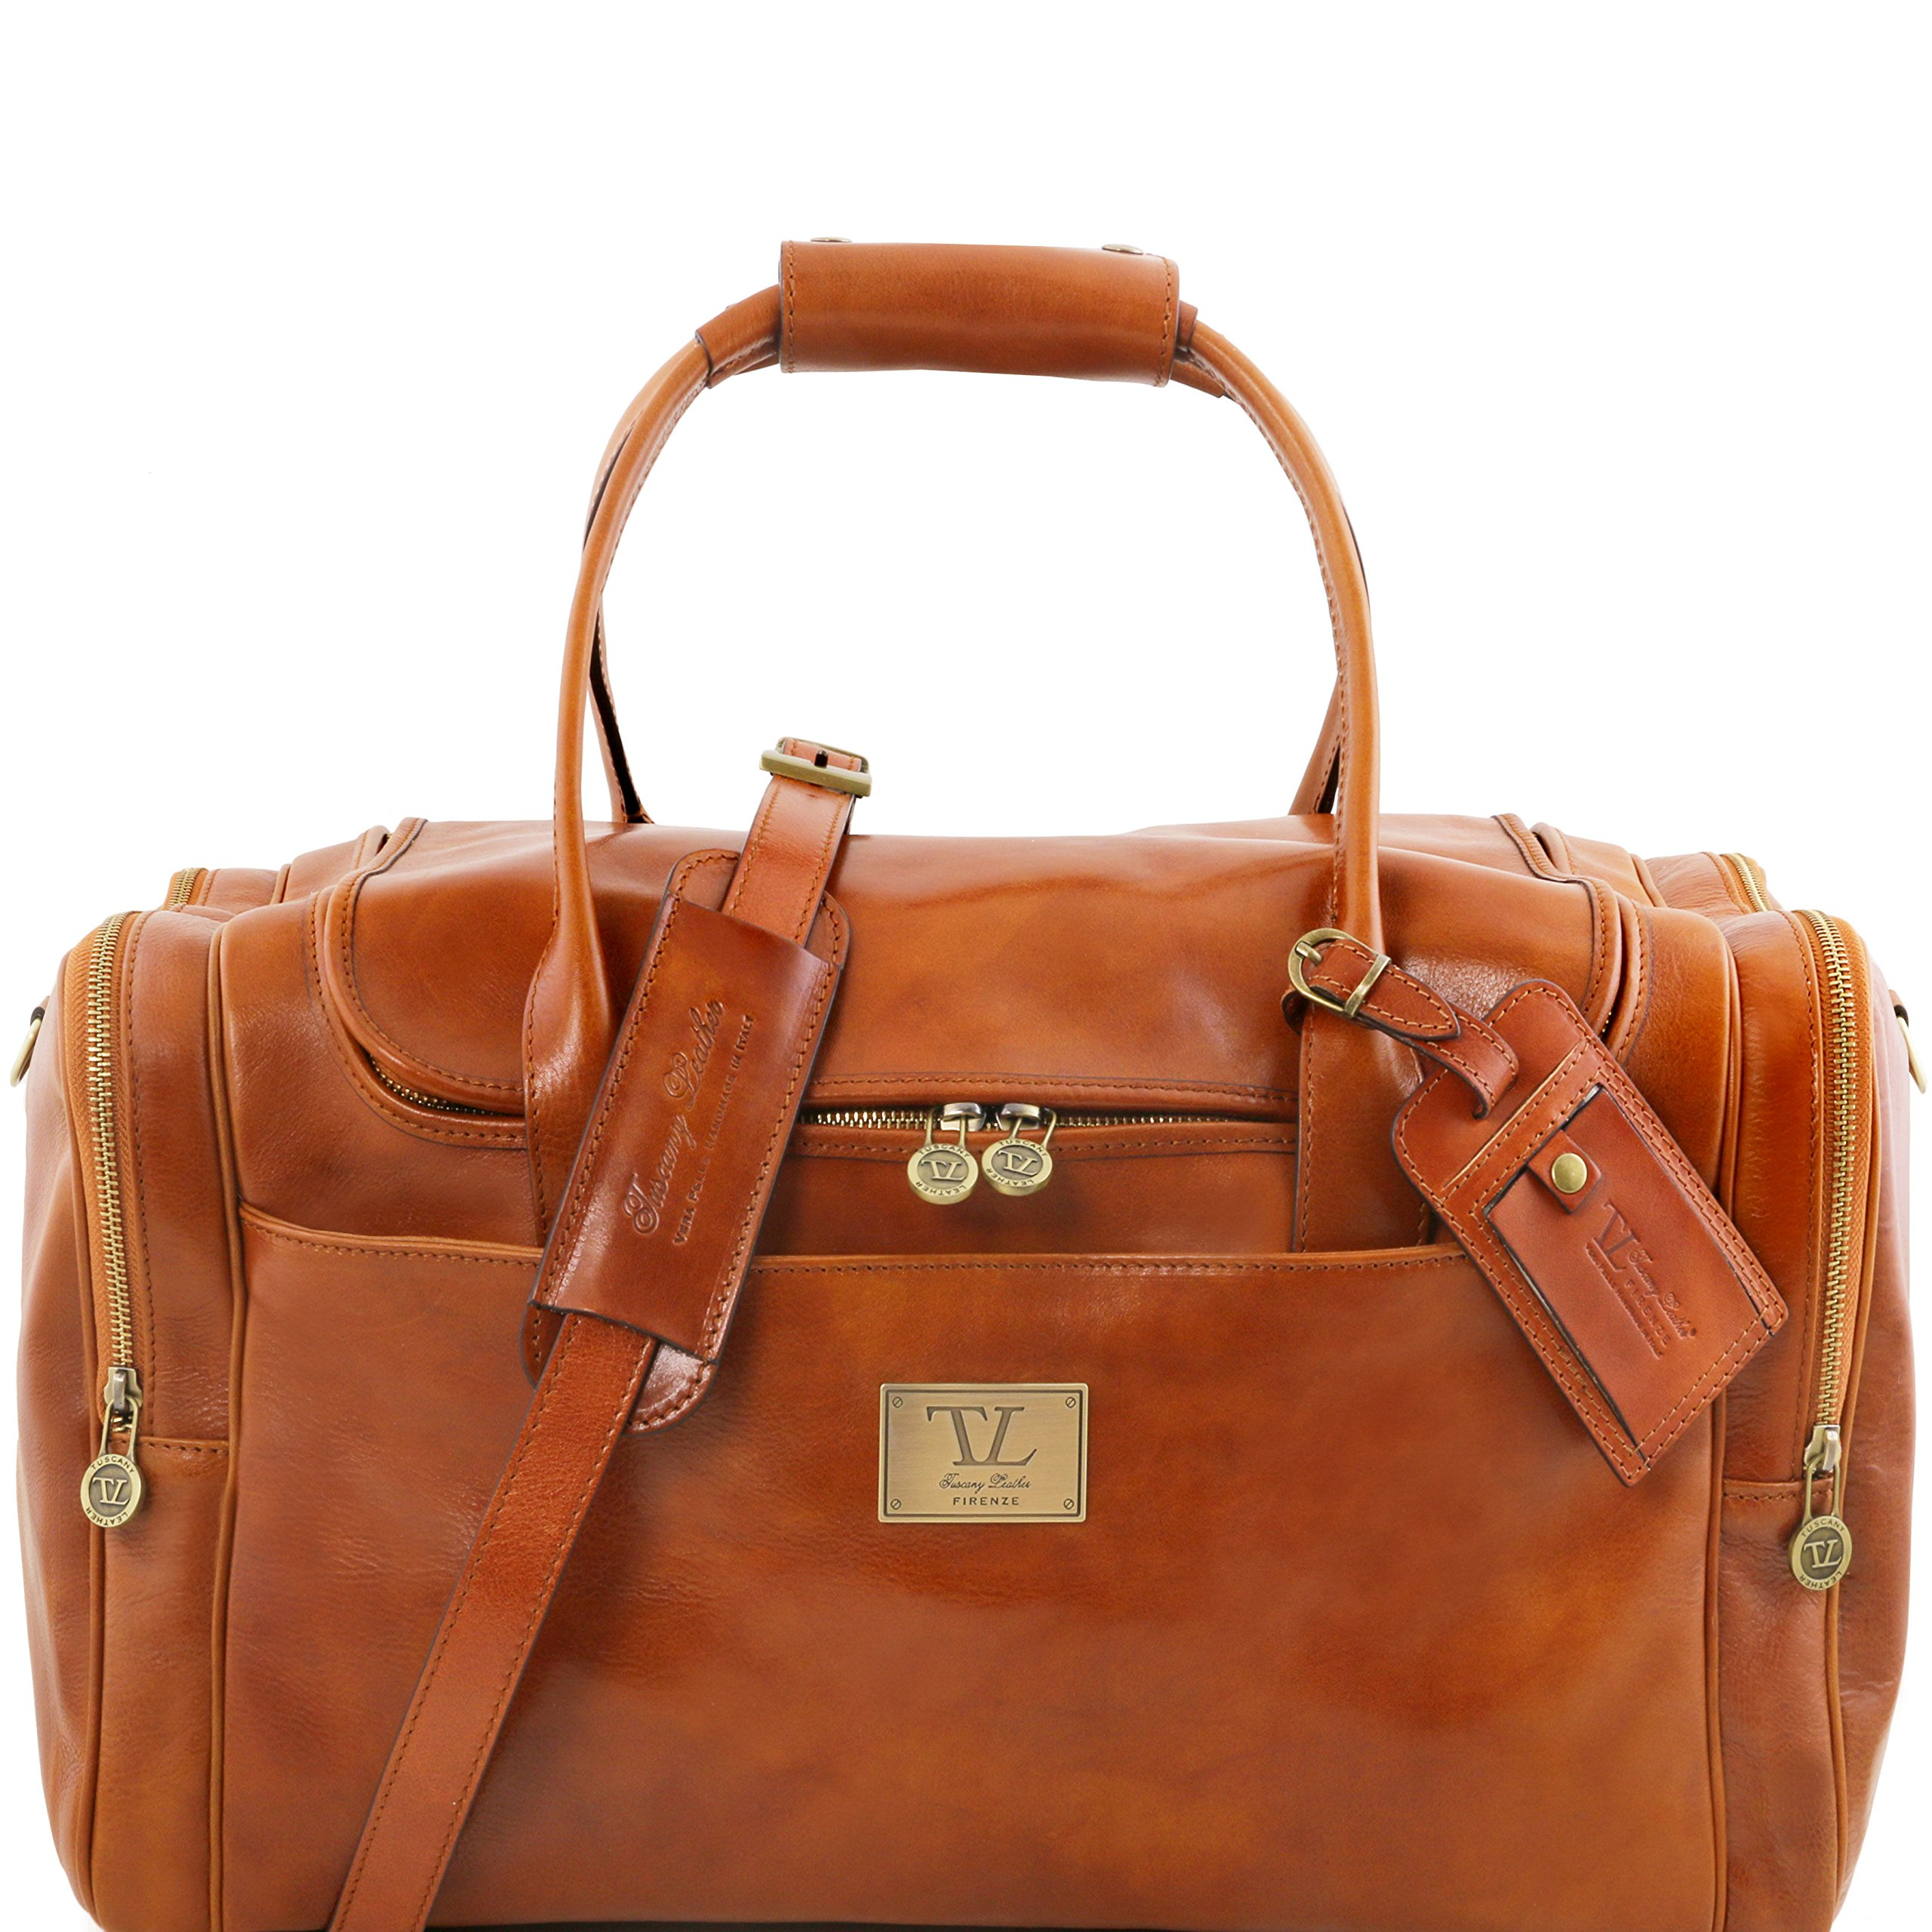 Tuscany Leather TL Voyager Travel leather bag with side pockets Honey Leather Travel bags by Tuscany Leather